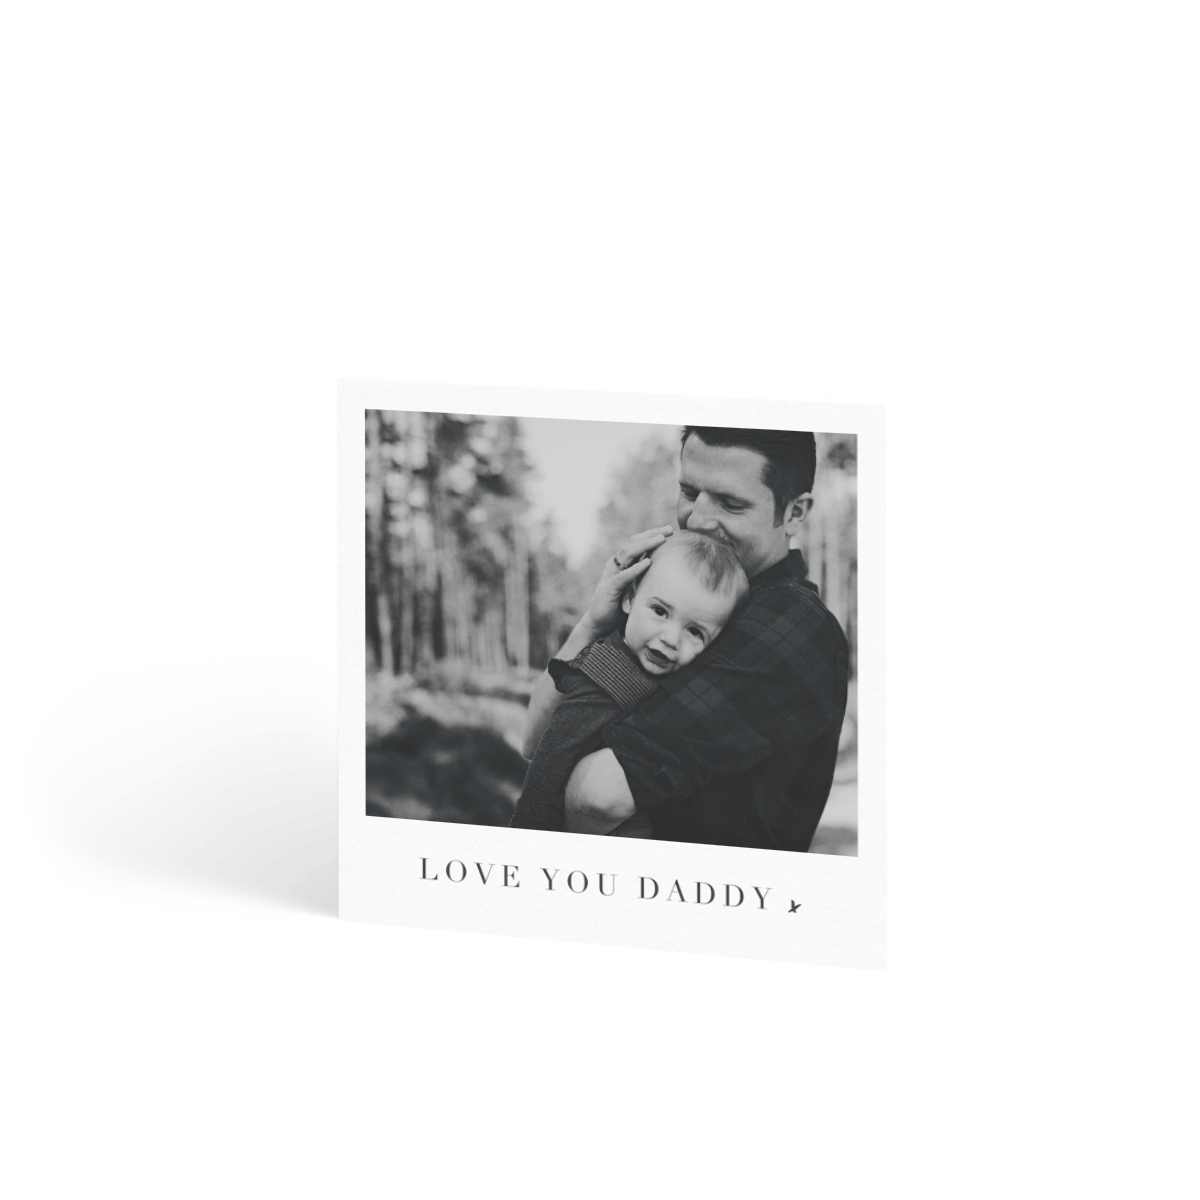 Https%3a%2f%2fwww.papier.com%2fproduct image%2f38502%2f16%2ffather s day photo card 9565 front 1527195508.png?ixlib=rb 1.1